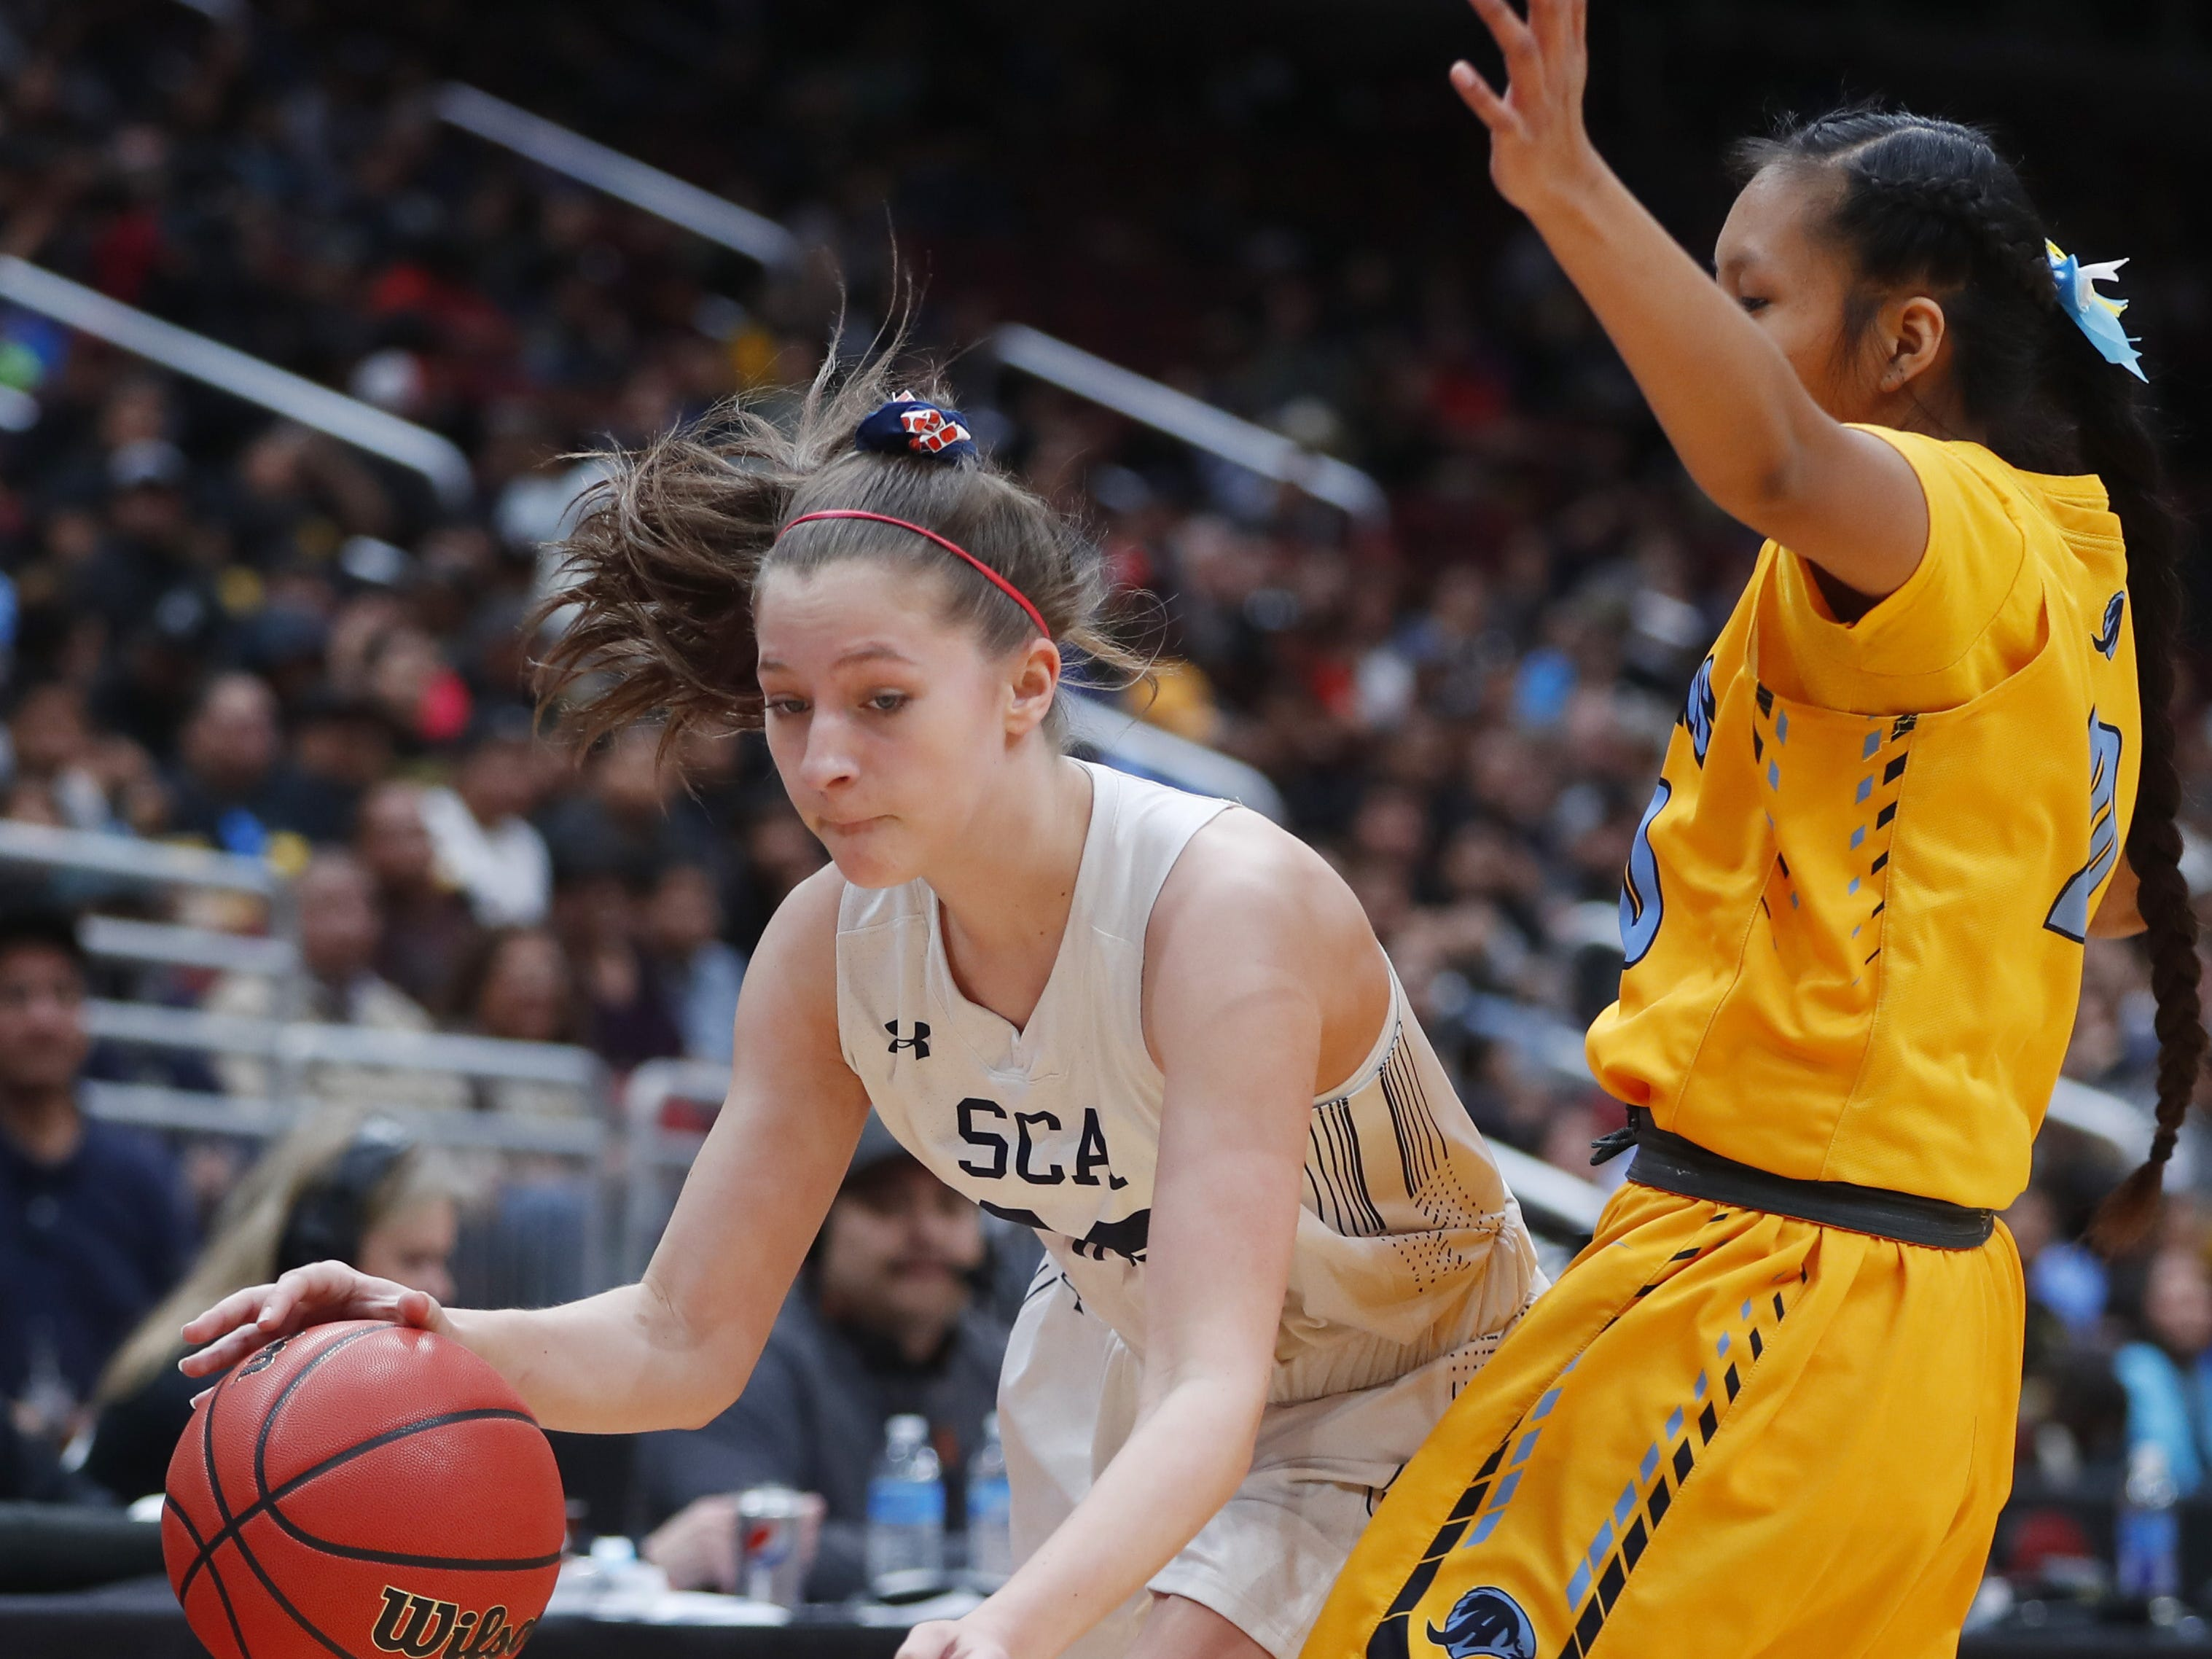 during the first half of the 2A girls basketball state championship game at Gila River Arena in Glendale, Ariz. on February 23, 2019.